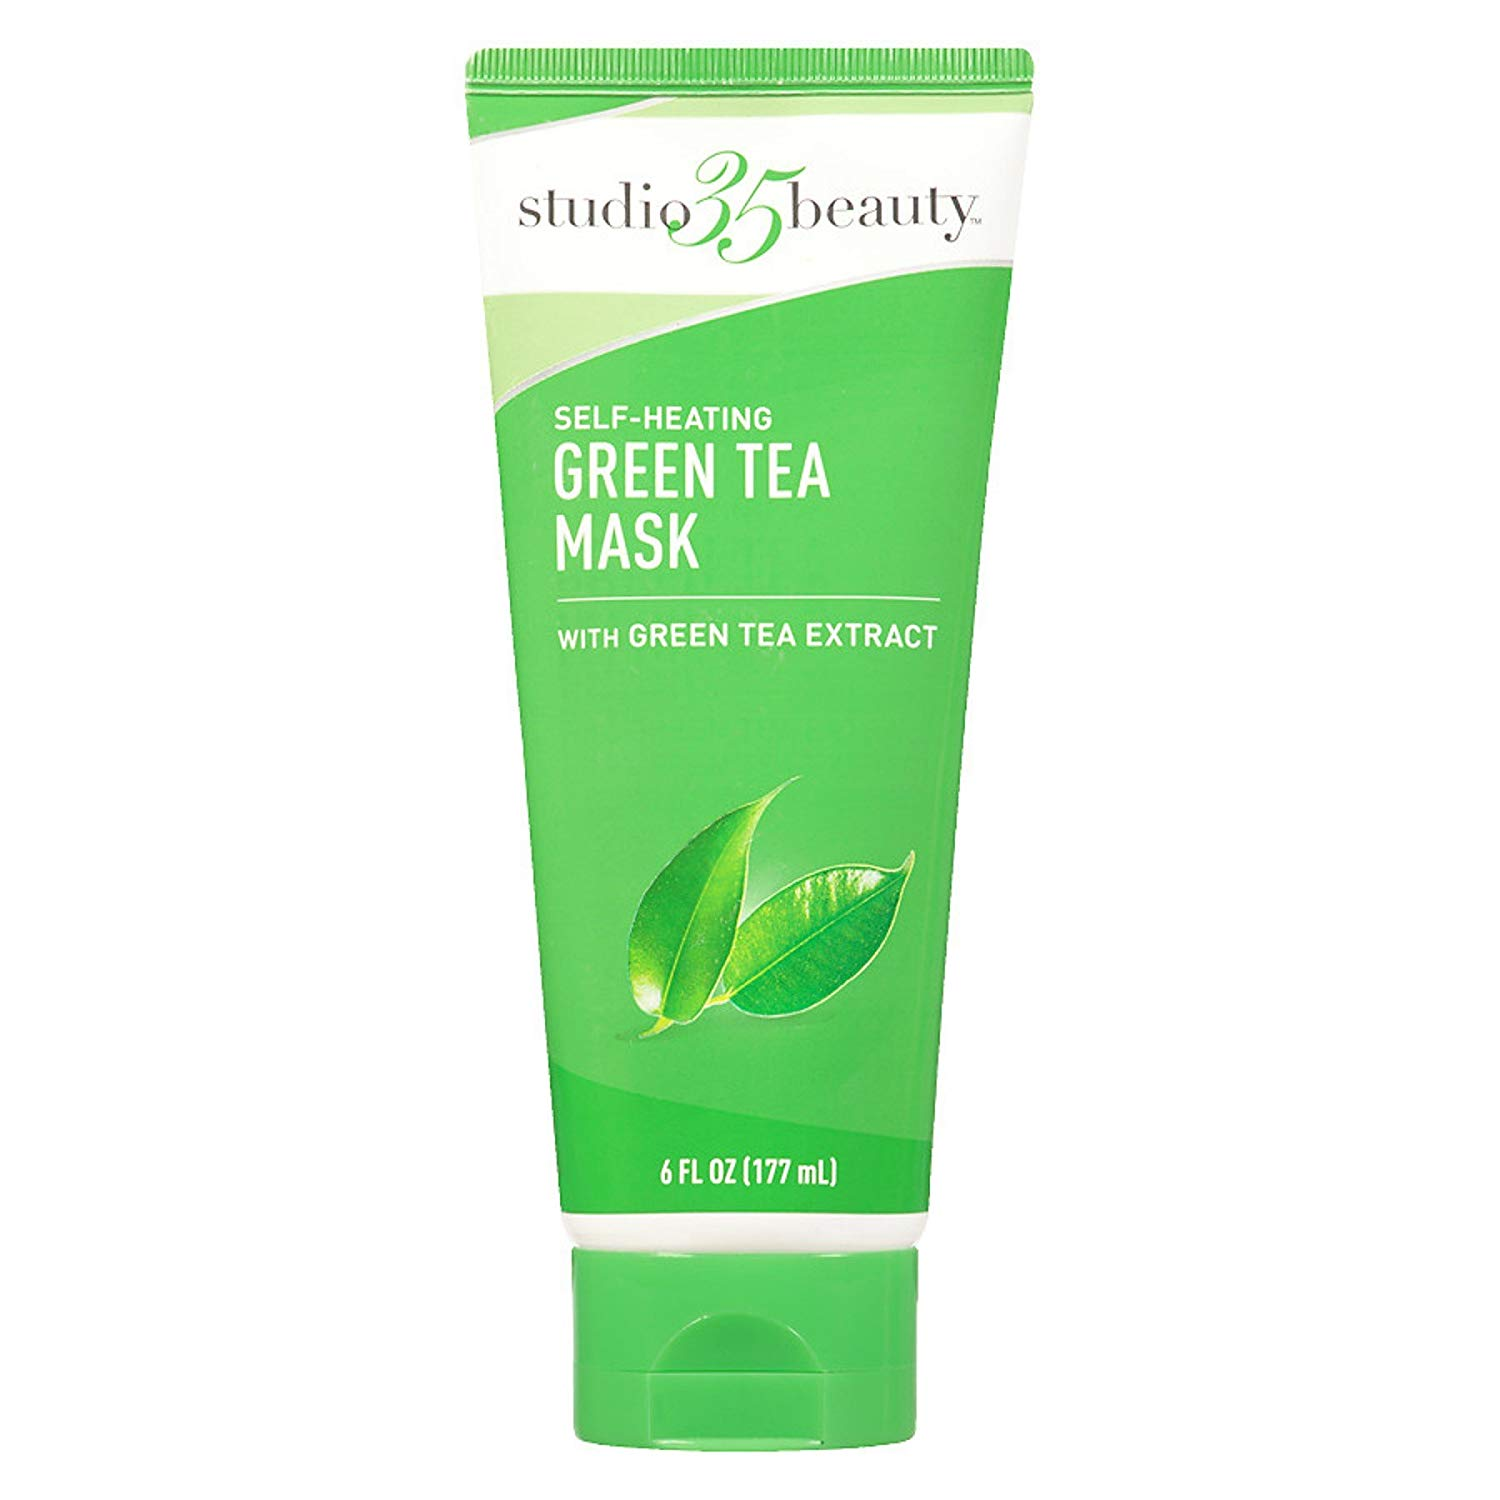 Cheap Green Tea Mask Acne Find Deals On Line At Acnes Tree Oil Clay 50g Get Quotations Studio 35 Self Heating 6oz Soothing For All Skintypes